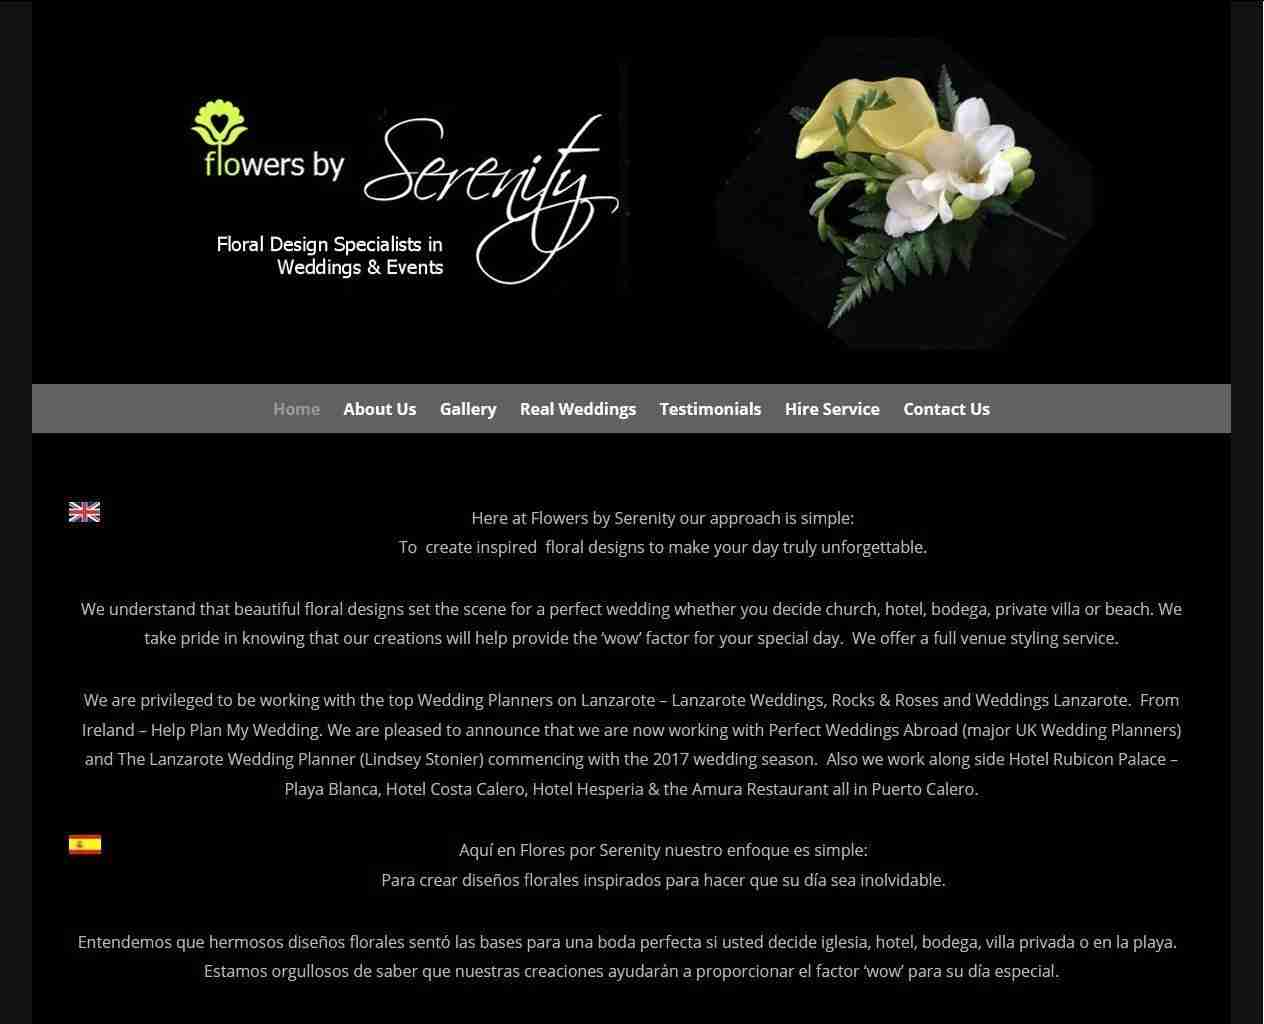 Spain Web Design and more by Gandy-Draper | Brilliant after sales service